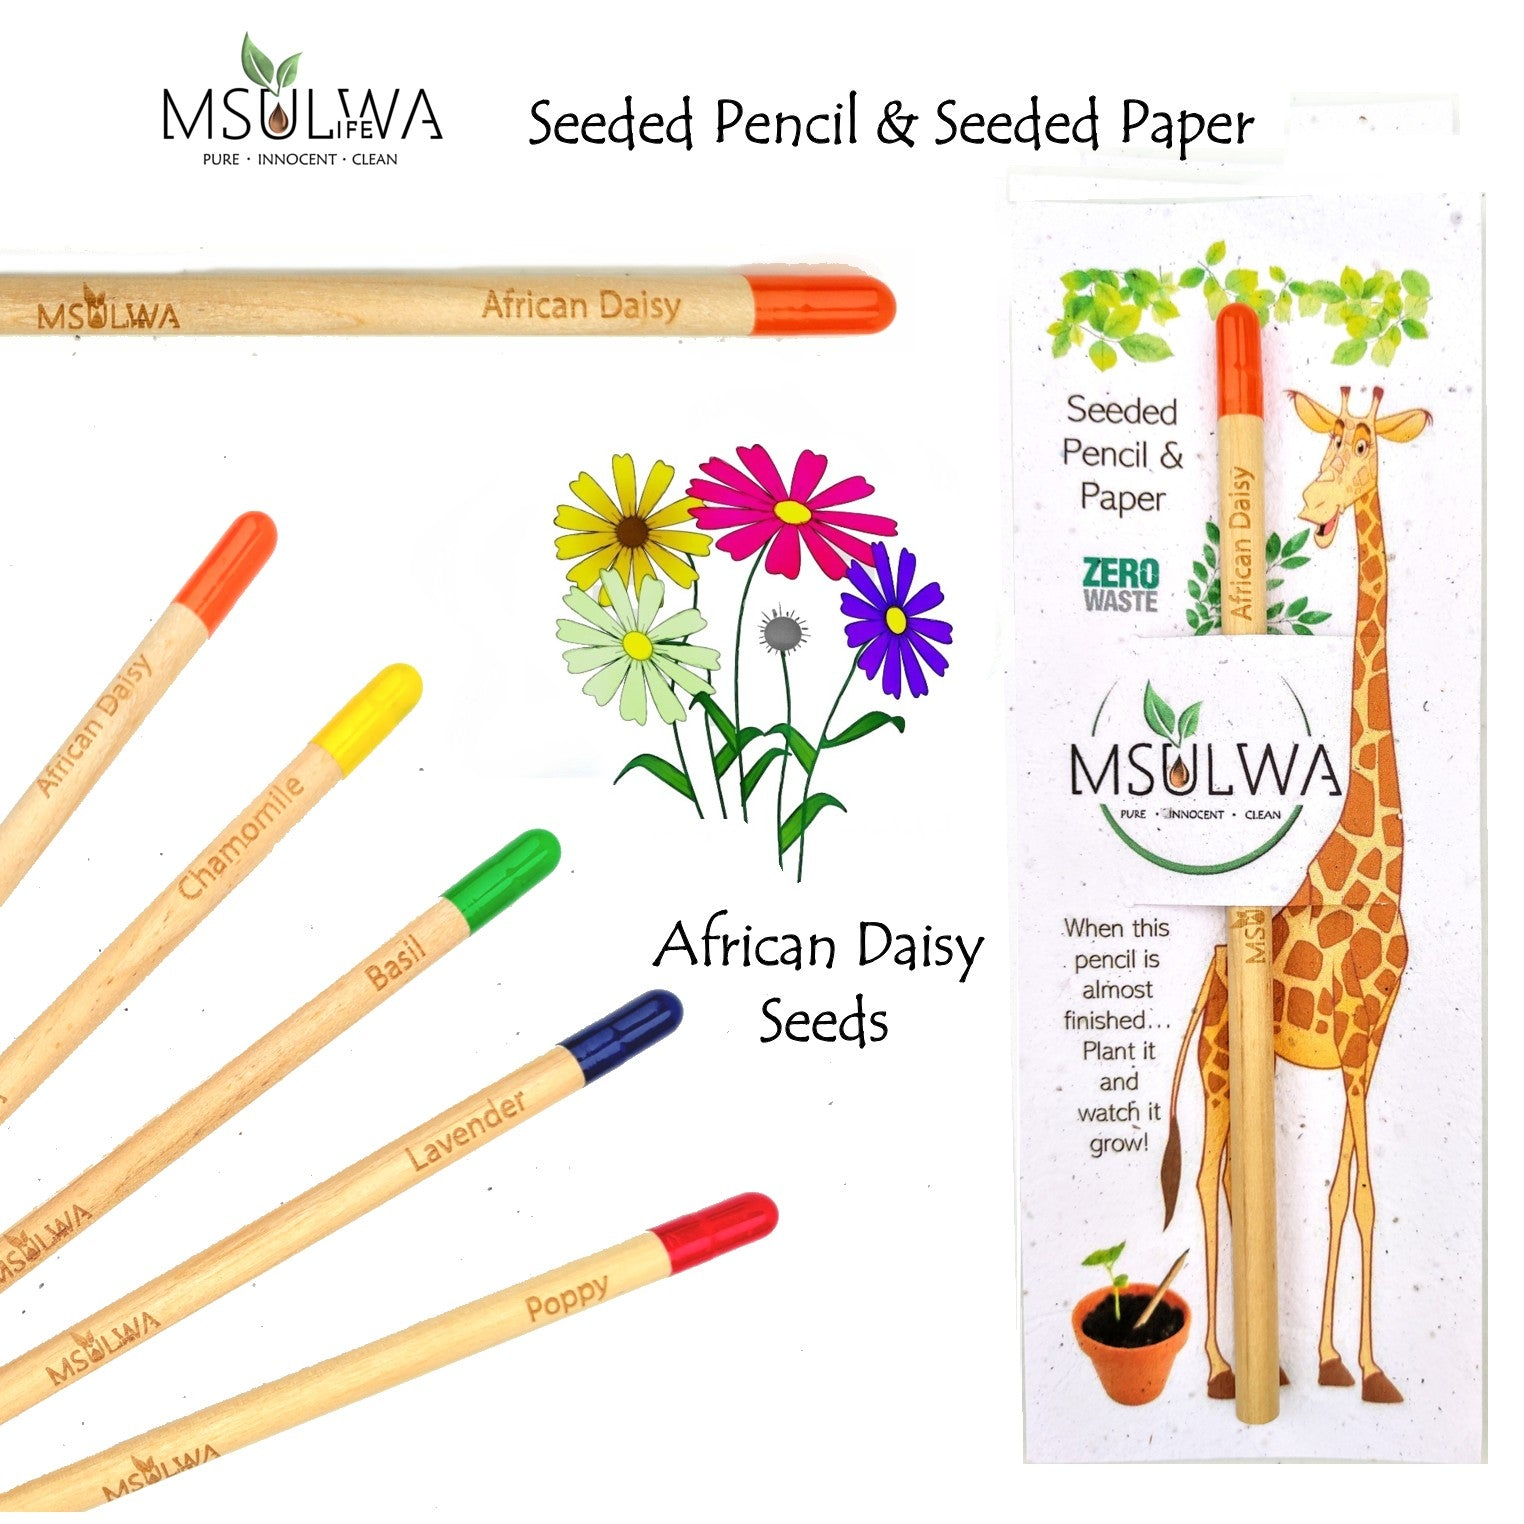 Msulwa Life Seeded Pencil & Paper